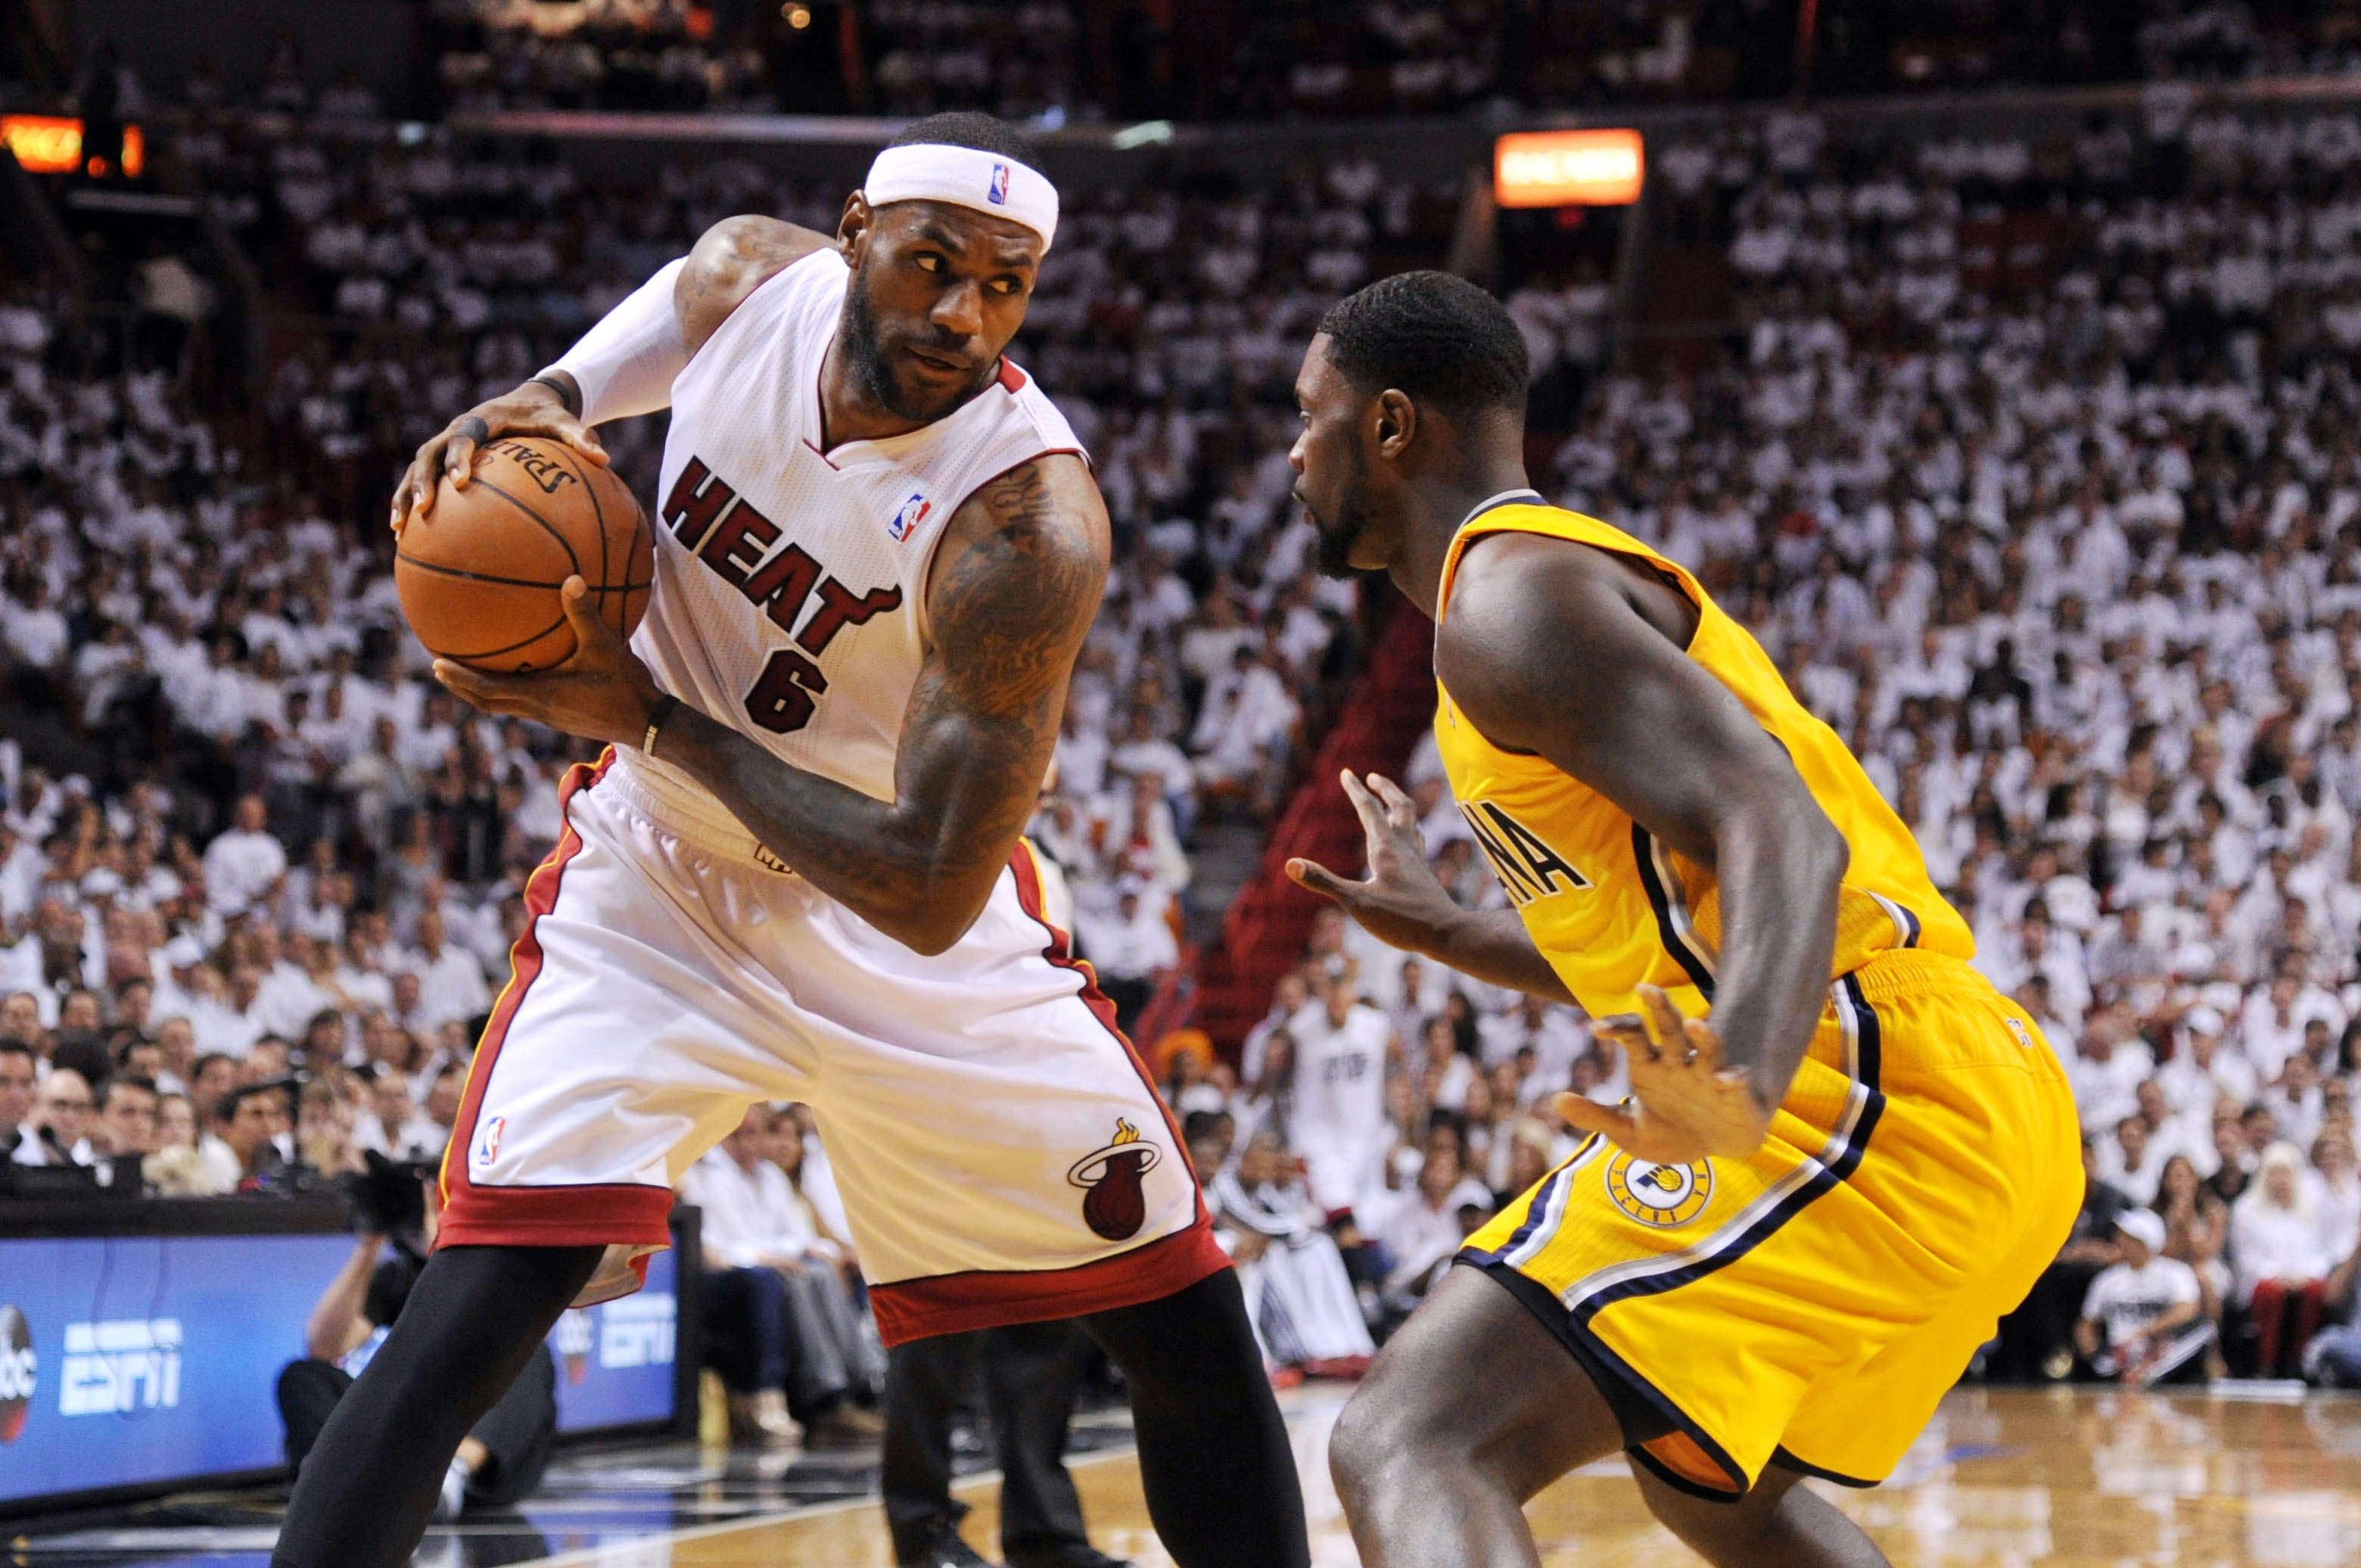 cd6b0df84c7 Tim Duncan, LeBron James square off in personal rubber match ...